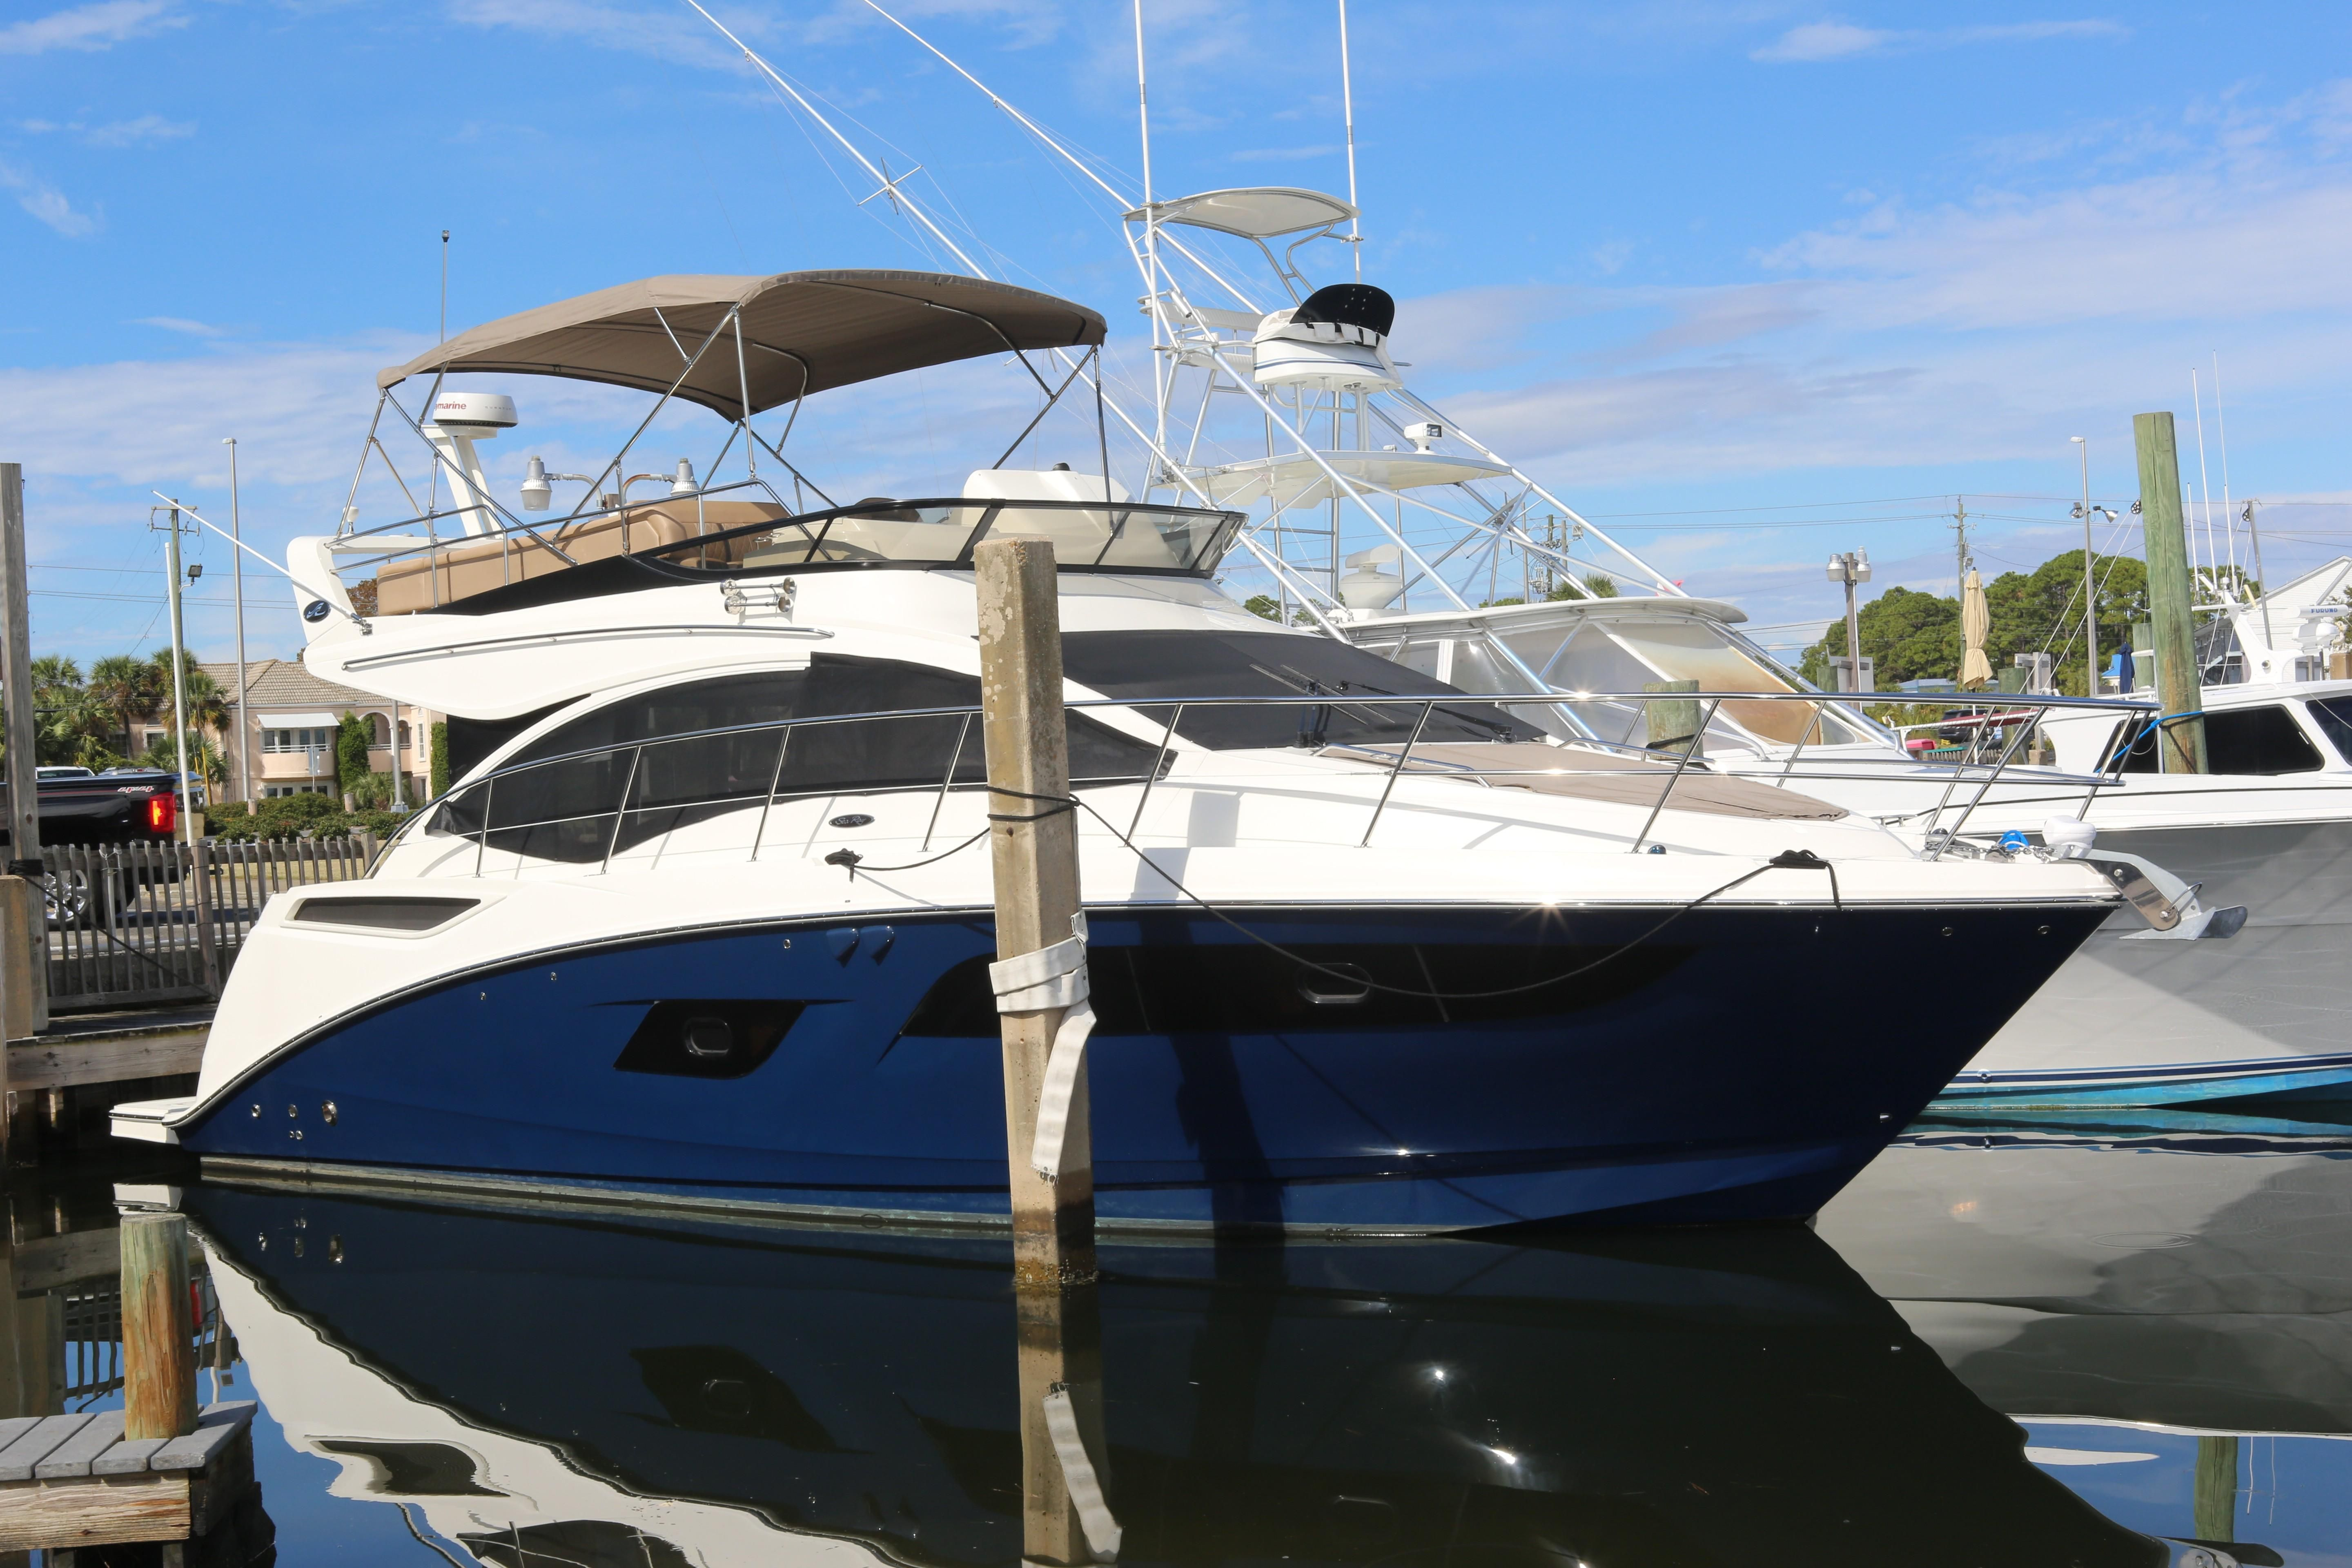 2017 Sea Ray Fly 400 Power Boat For Sale Www Yachtworld Com